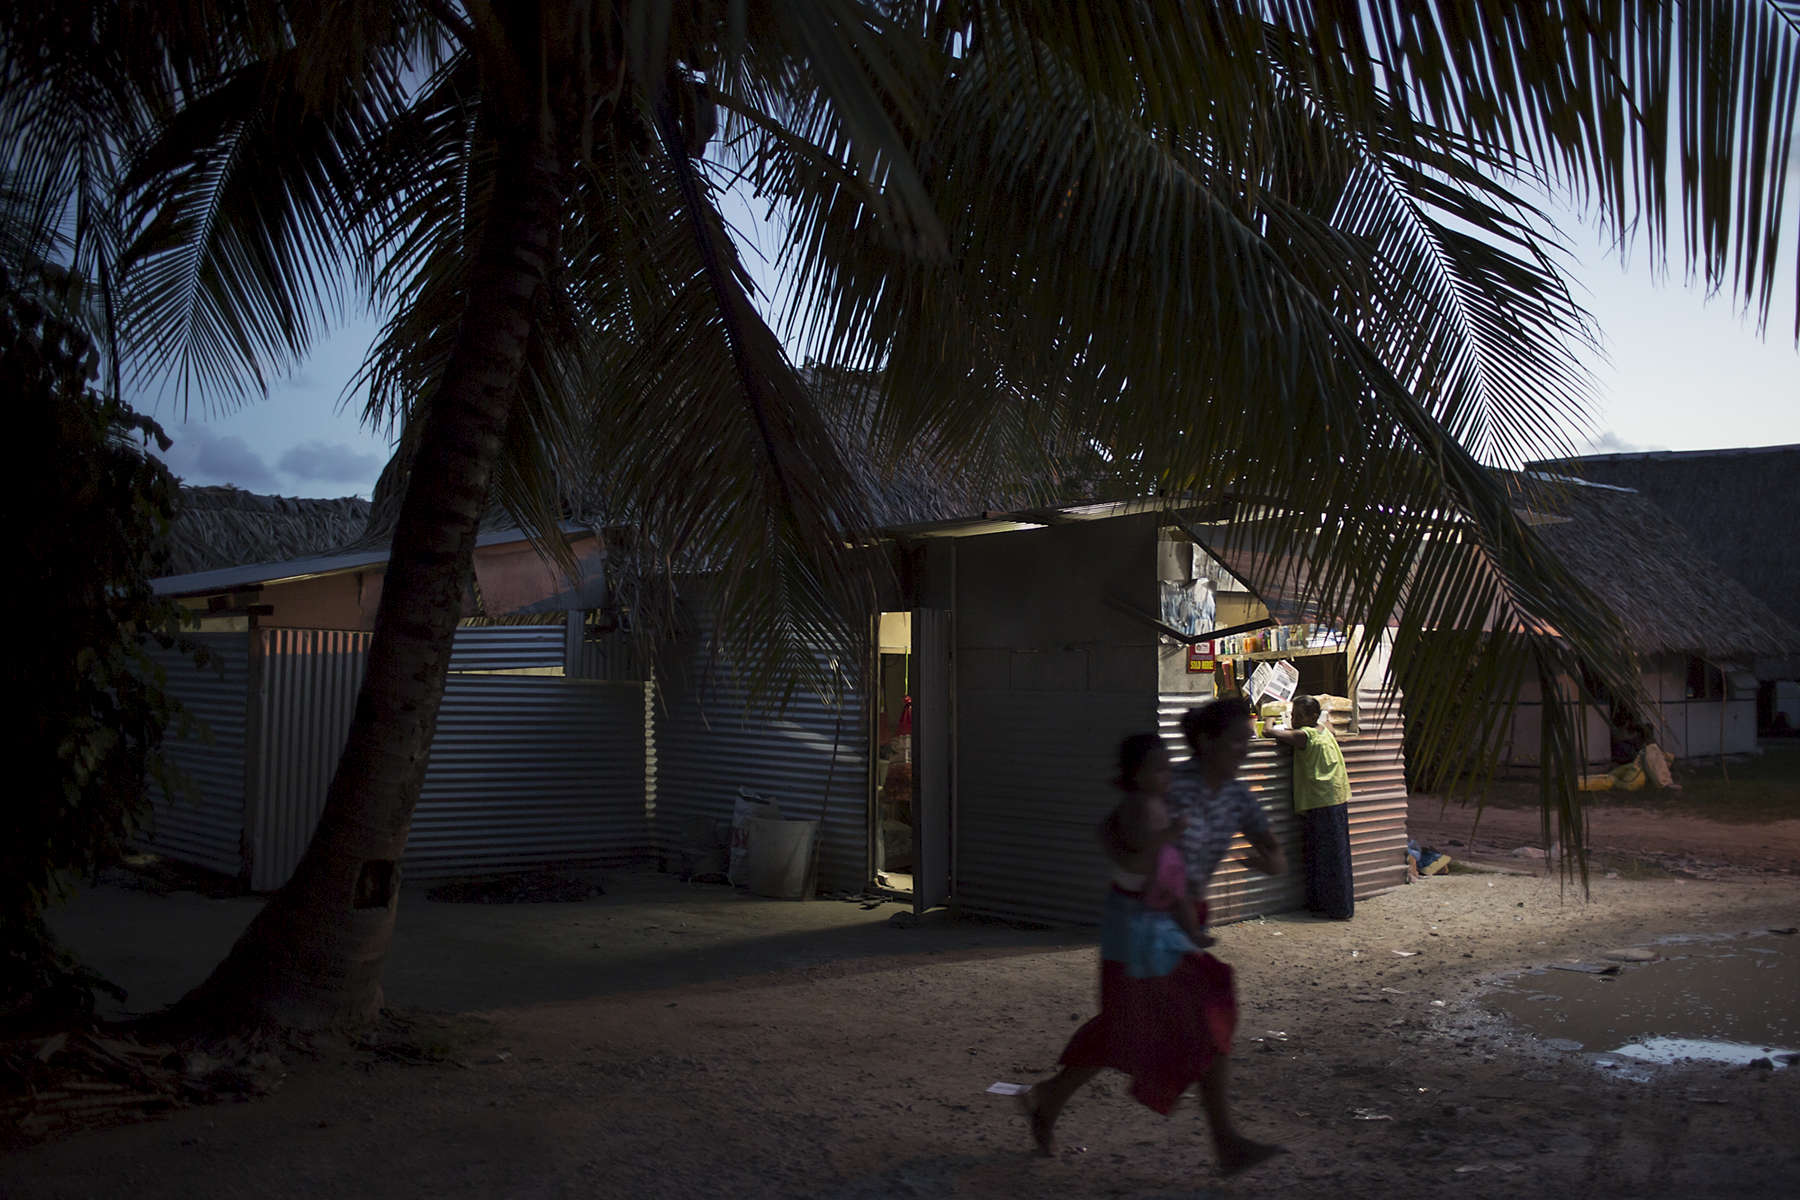 At dusk after a domestic dispute a woman runs from her house carrying a young child. Domestic violence is a big social issue in Kiribati. During the photographers stay in 2014, two women were murdered by their partners in domestic disputes.